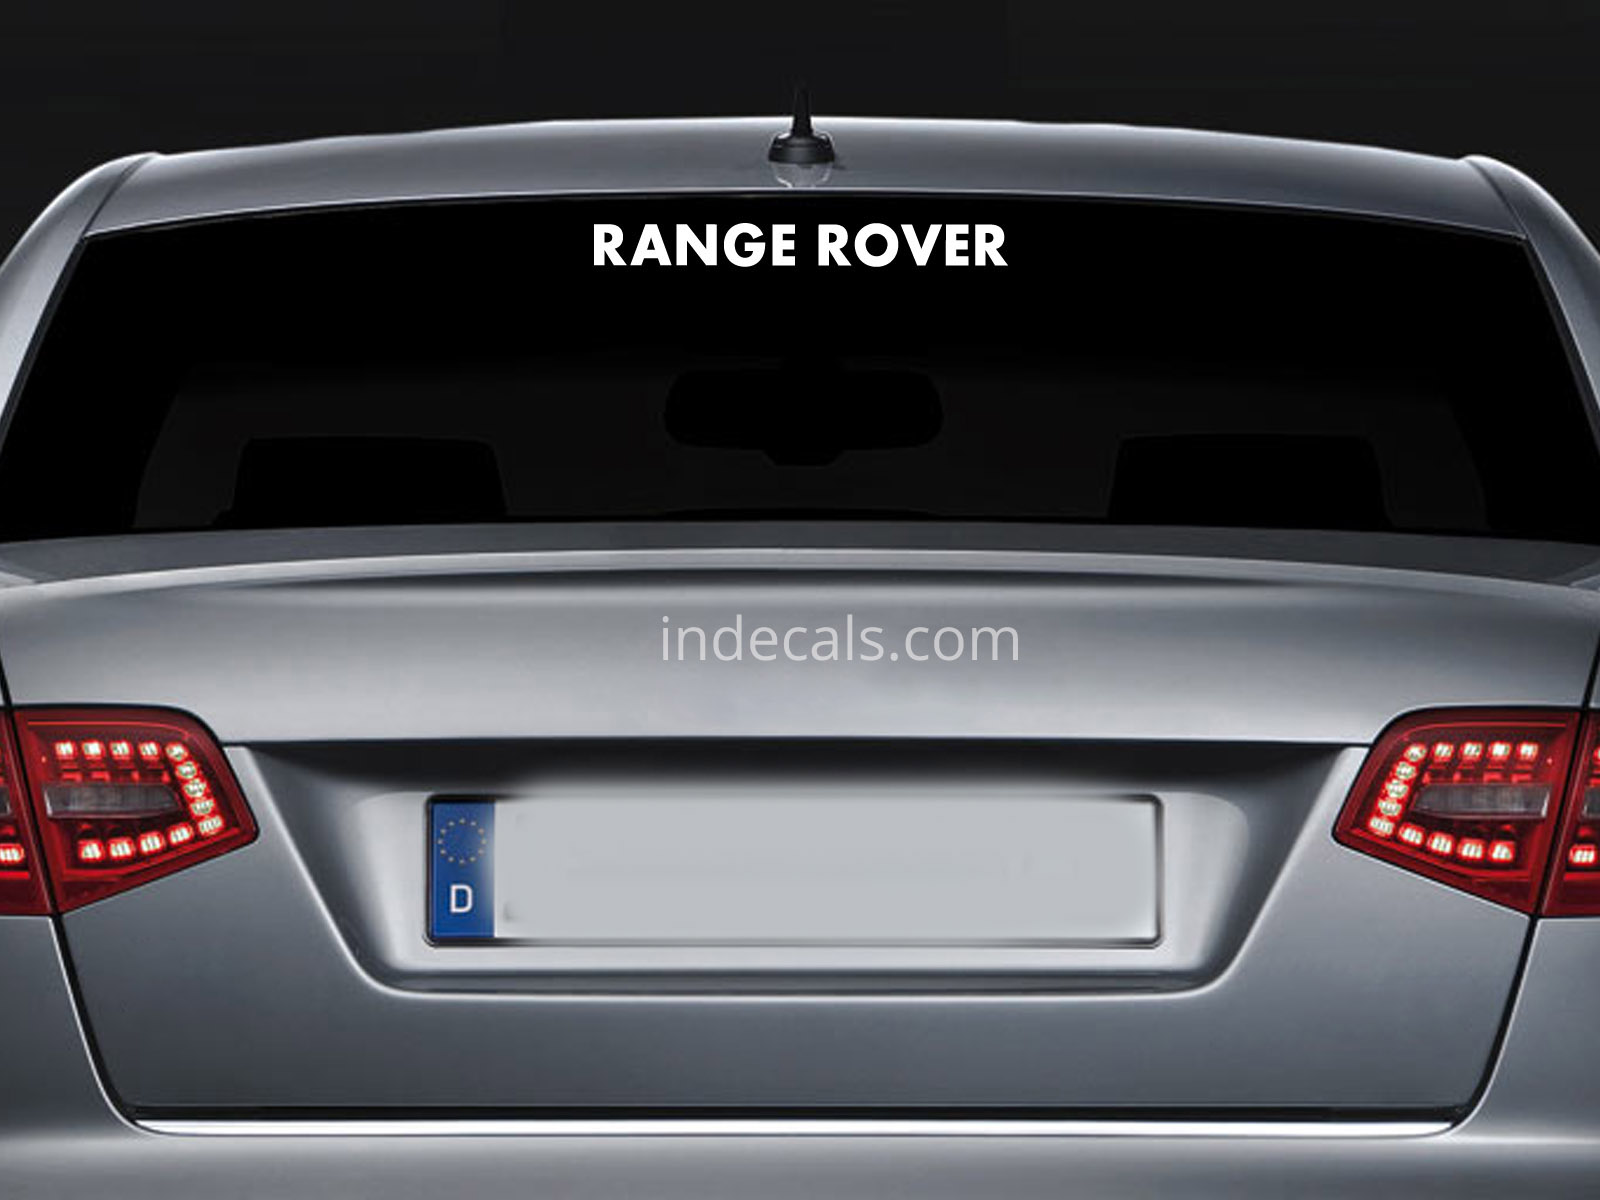 1 x Range Rover Sticker for Windshield or Back Window - White